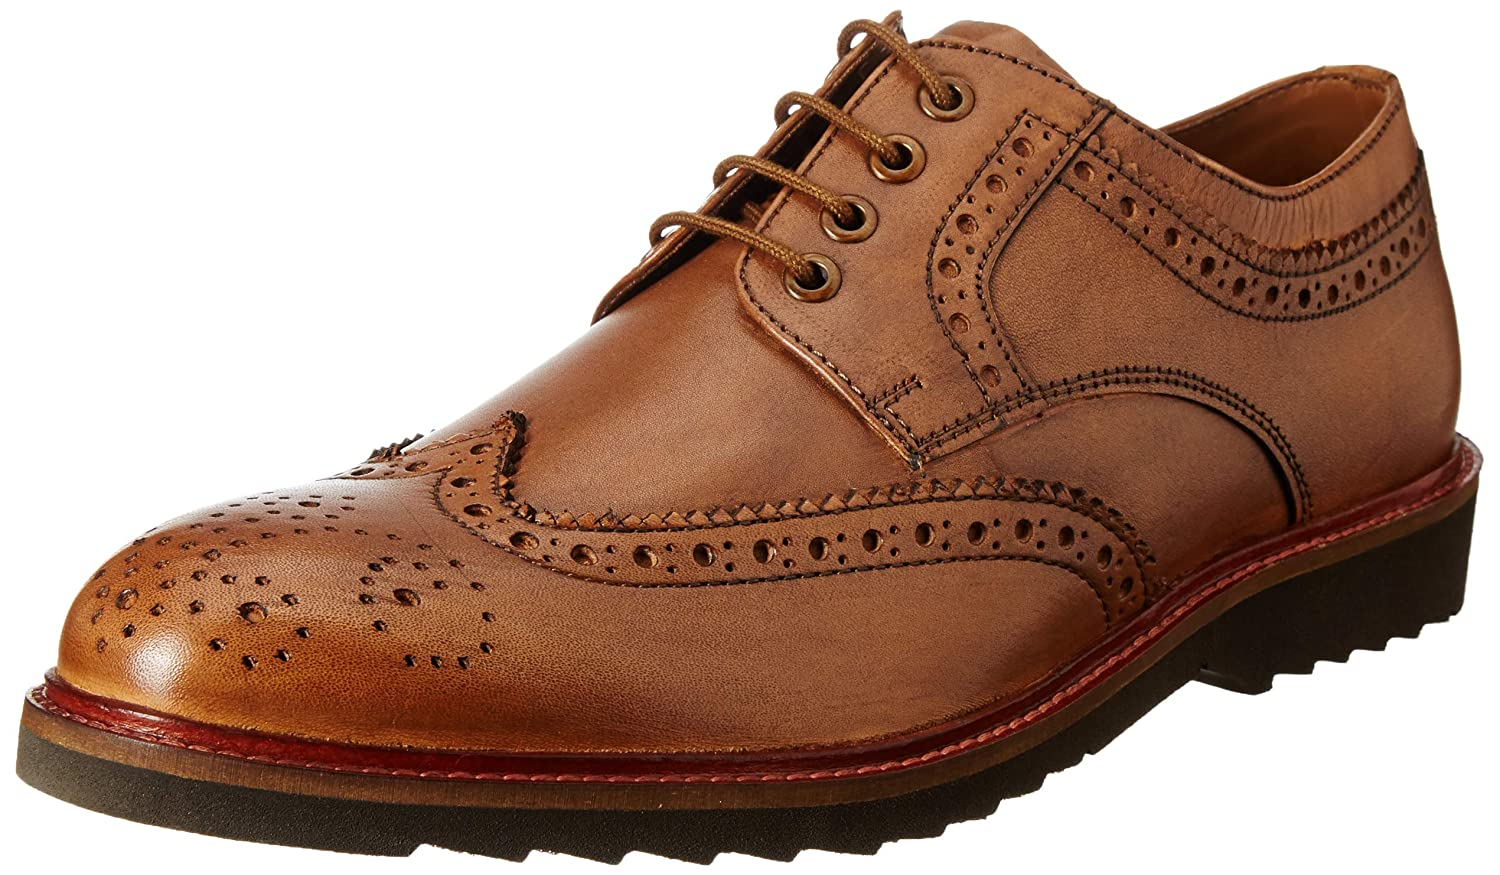 Van Heusen Men s Brown Leather Formal Shoes-9 UK India (43 EU)  (VHSS517A00049)  Buy Online at Low Prices in India - Amazon.in 98f2efca5